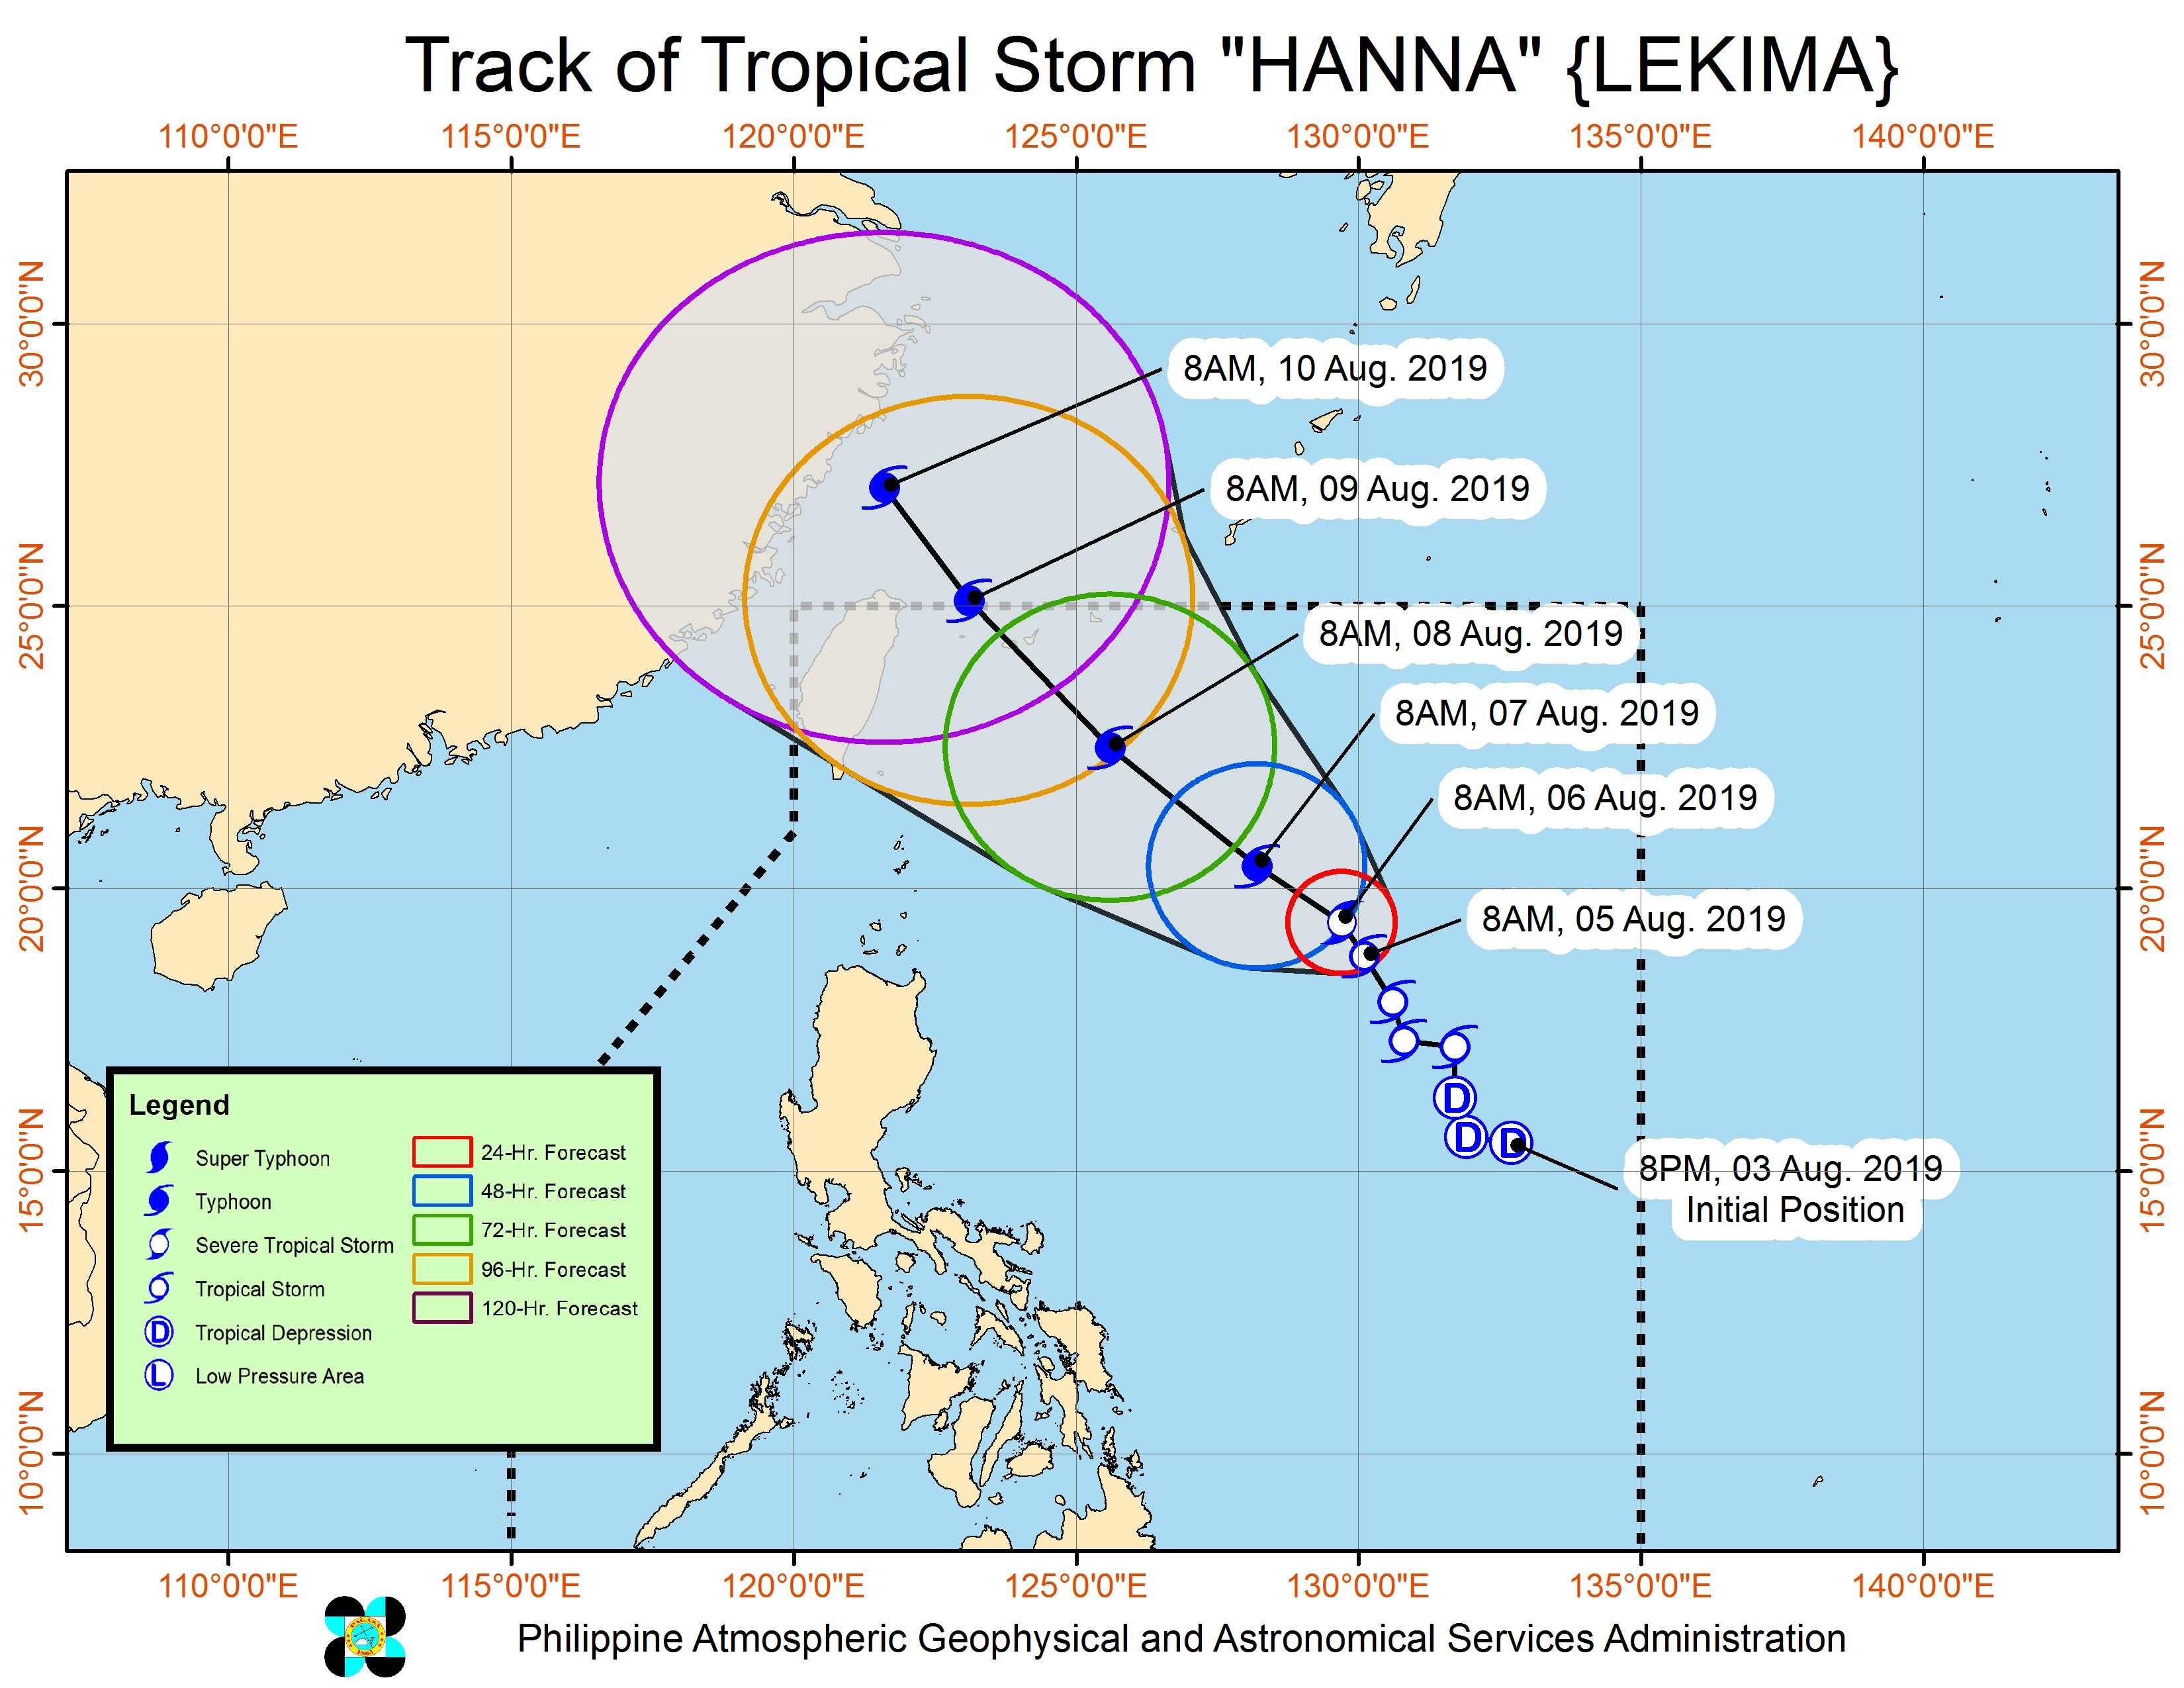 Forecast track of Tropical Storm Hanna (Lekima) as of August 5, 2019, 11 am. Image from PAGASA